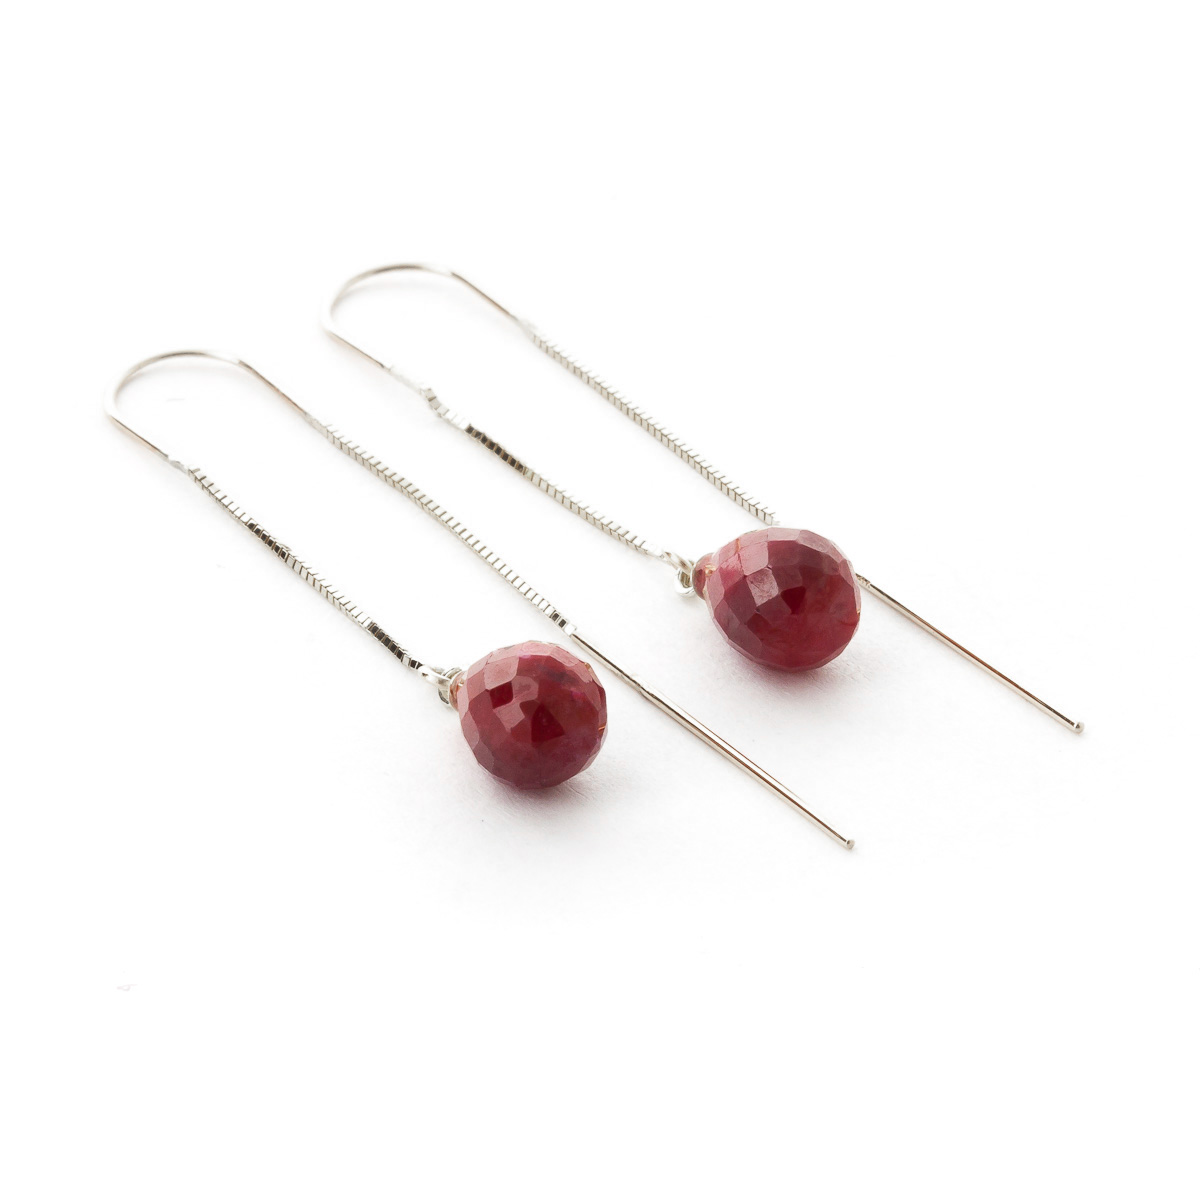 Ruby Scintilla Briolette Earrings 6.6ctw in 9ct White Gold